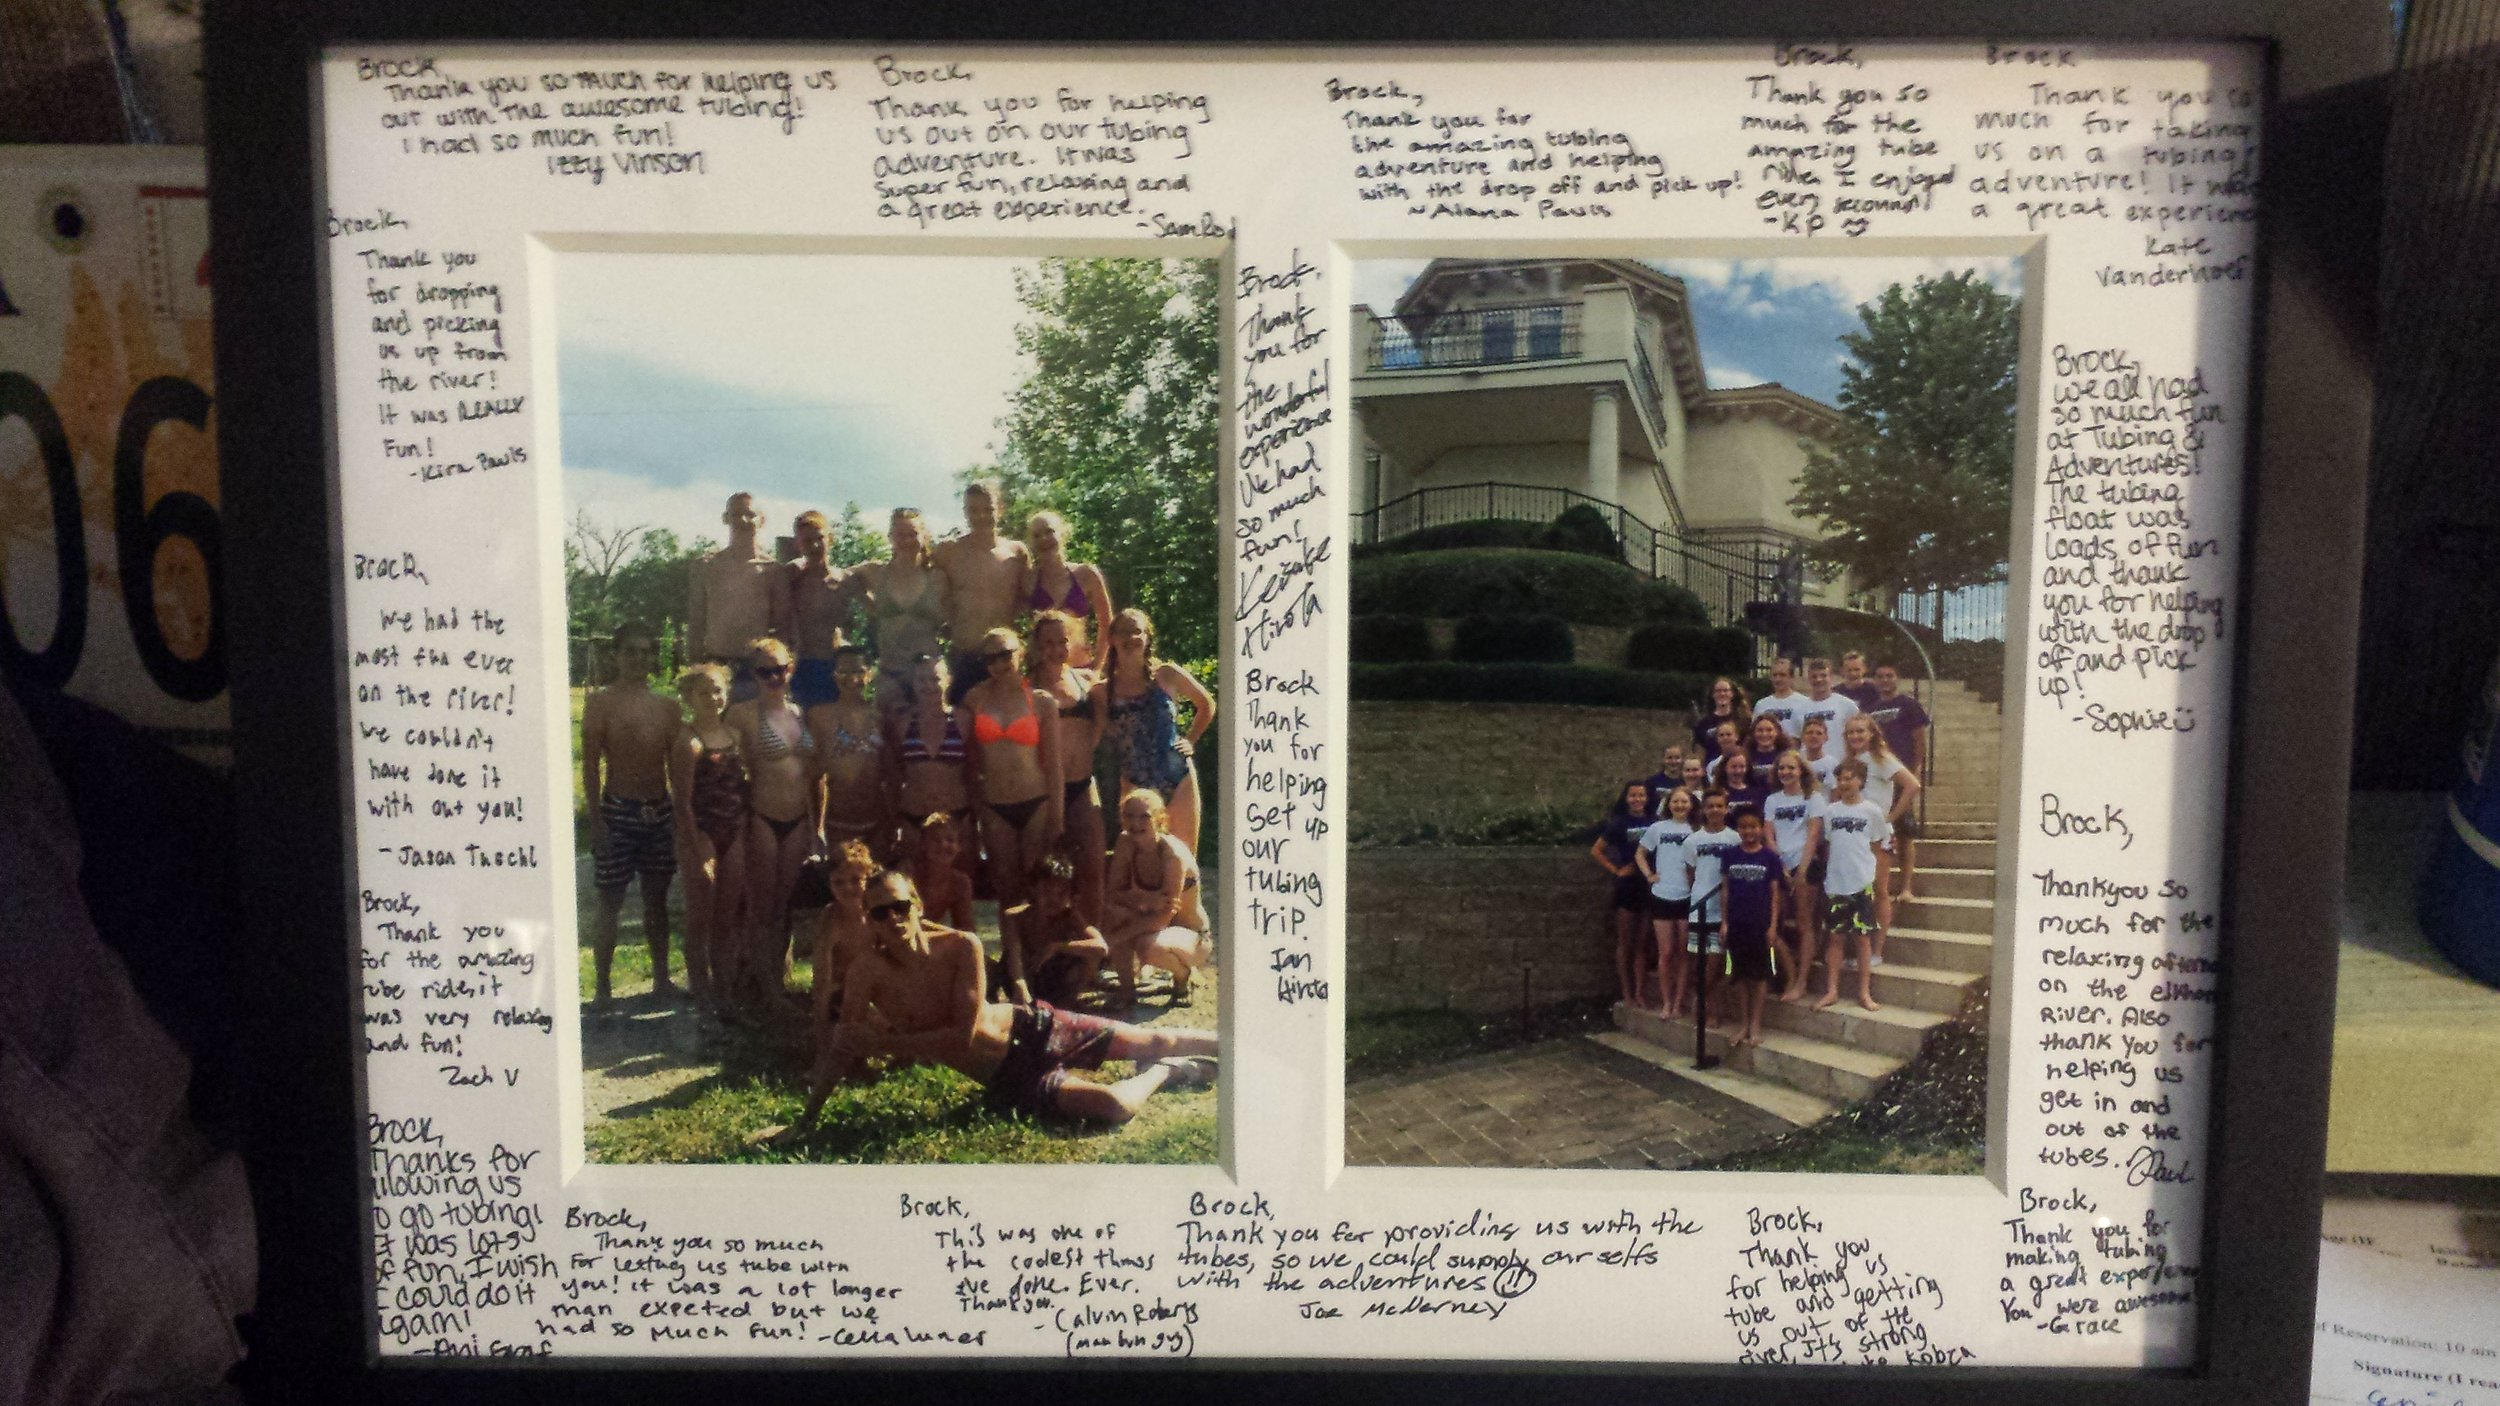 A swim team from Wisconsin came to Omaha for the Olympic Swim Trials, and saw T&A was one of the top 10 fun things to do in Omaha. After the float, they presented us with this picture as a thank you.